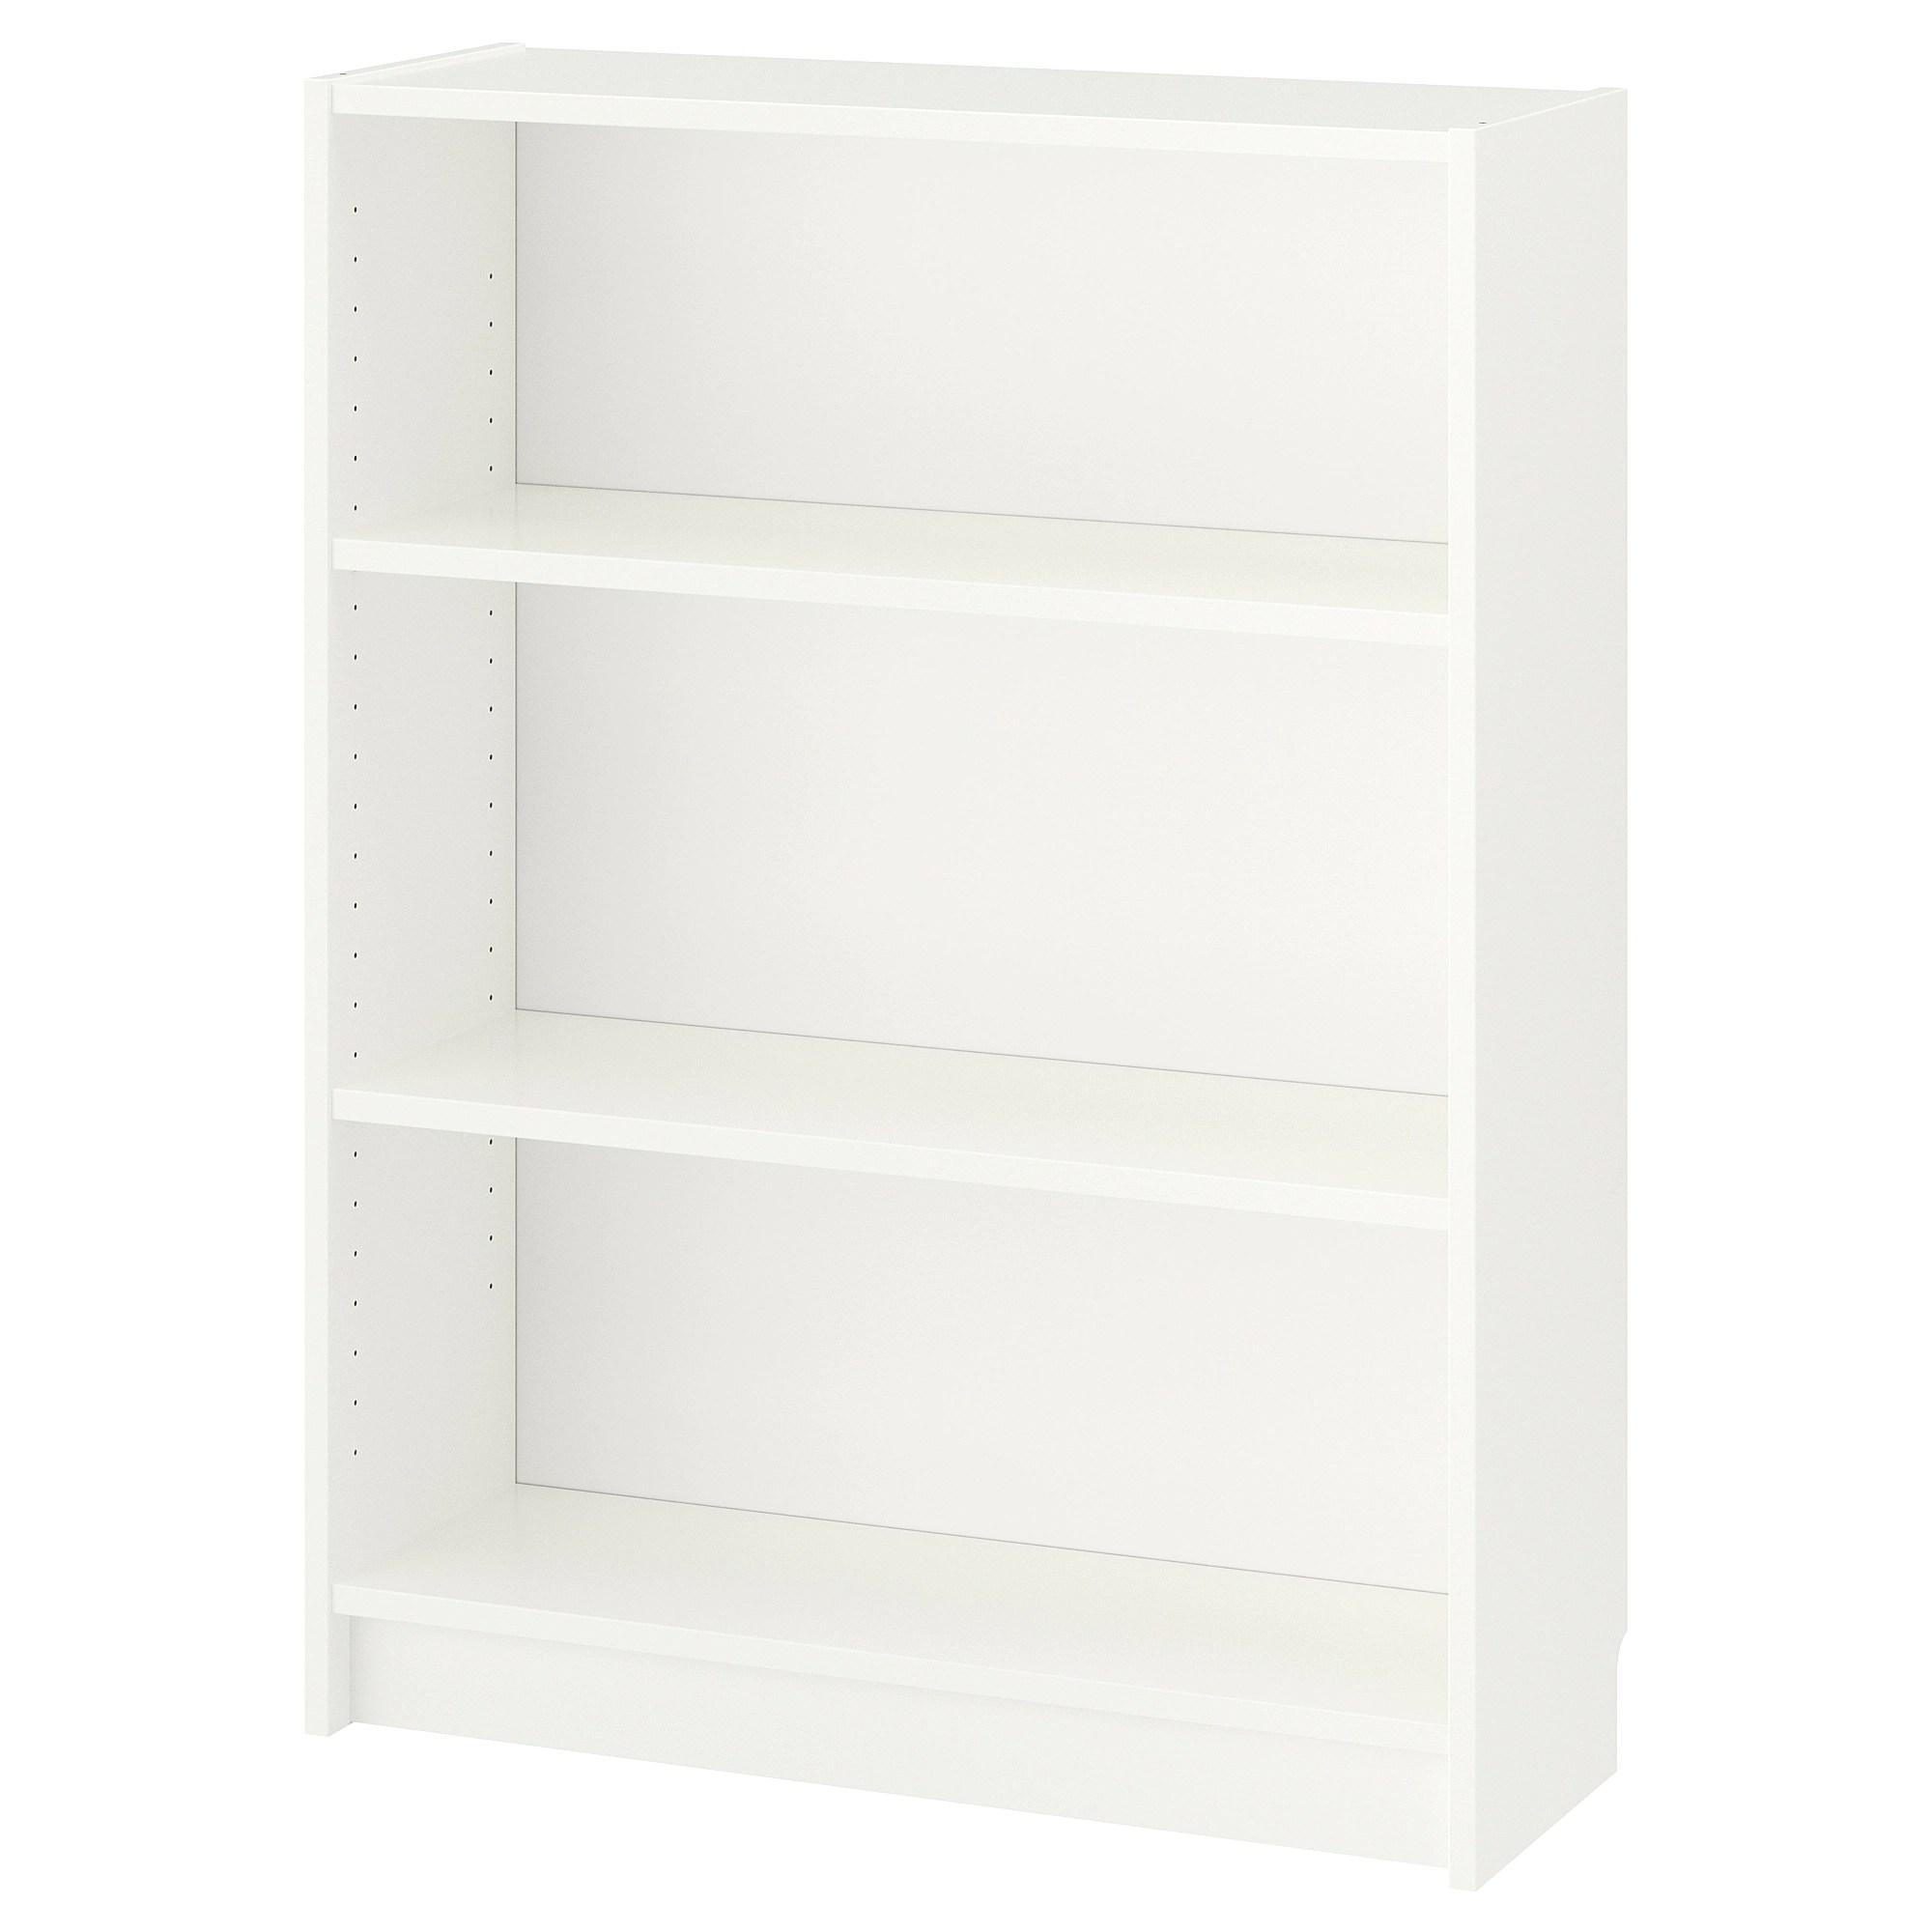 Ikea Regalsysteme Keller Bücherregal Billy Weiß